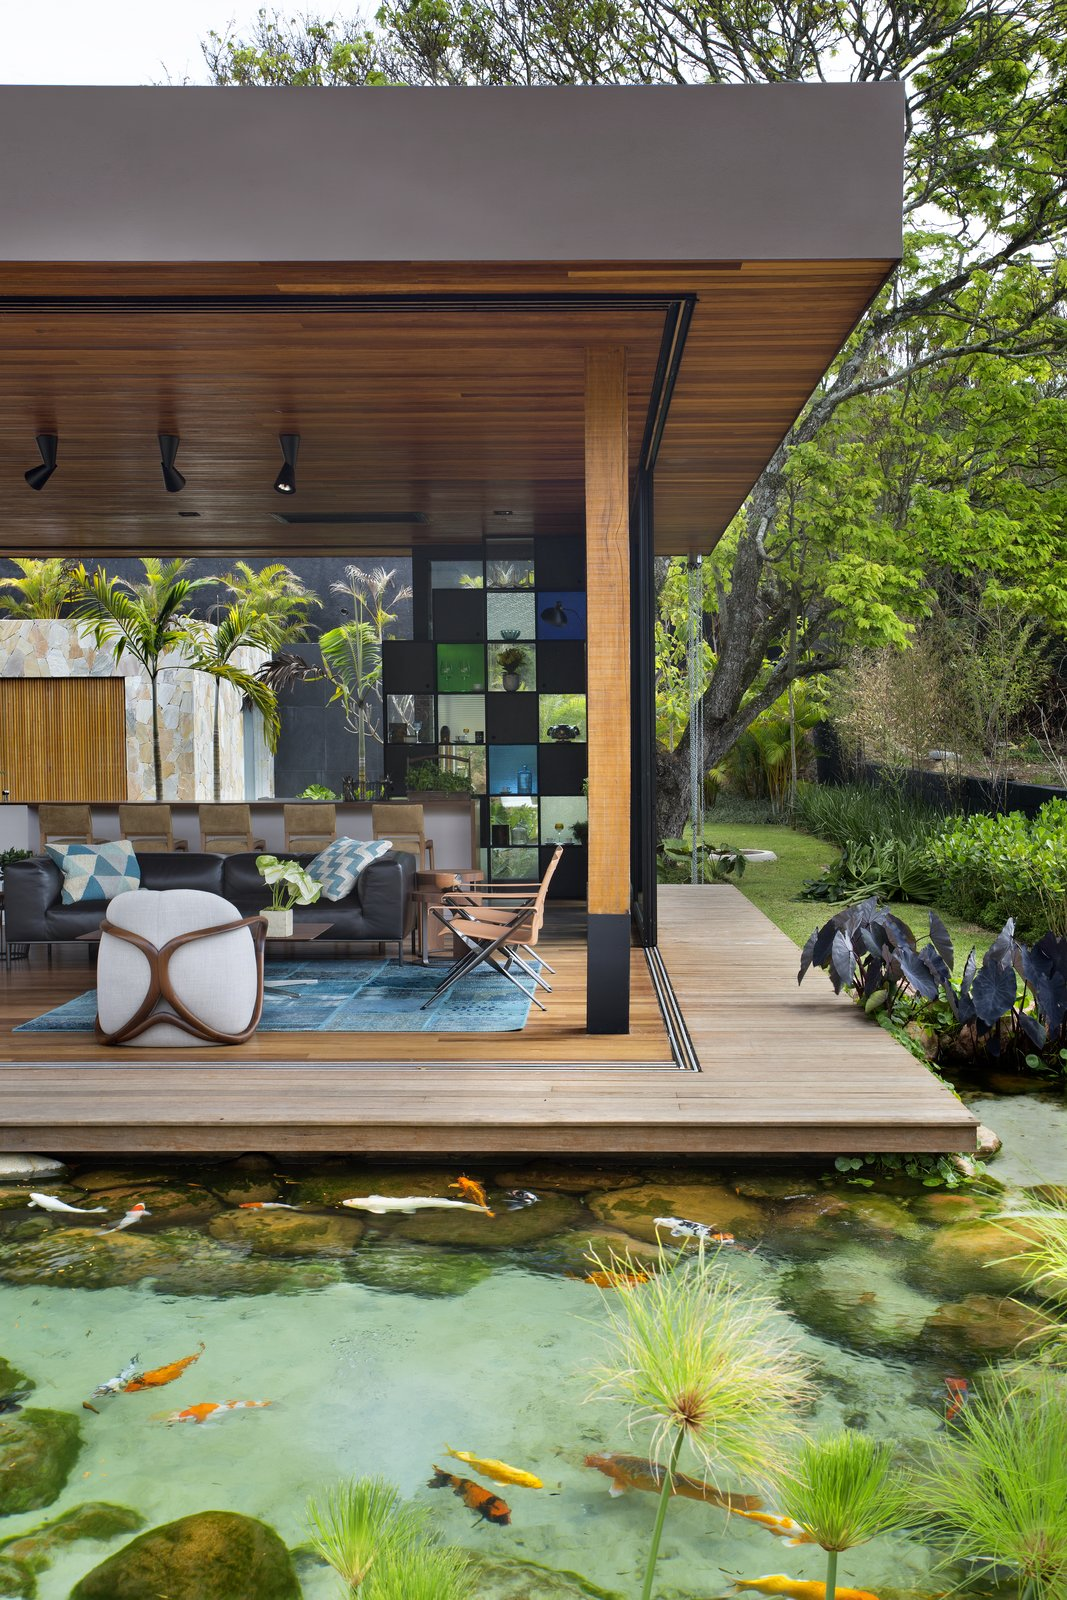 Outdoor, Wood, Back Yard, Small, Horizontal, Trees, Grass, Shrubs, and Boulders The home appears to float above the natural pool, adding an element of whimsy.  Best Outdoor Shrubs Small Photos from This Breezy Brazilian Home Oozes Tropical Vibes